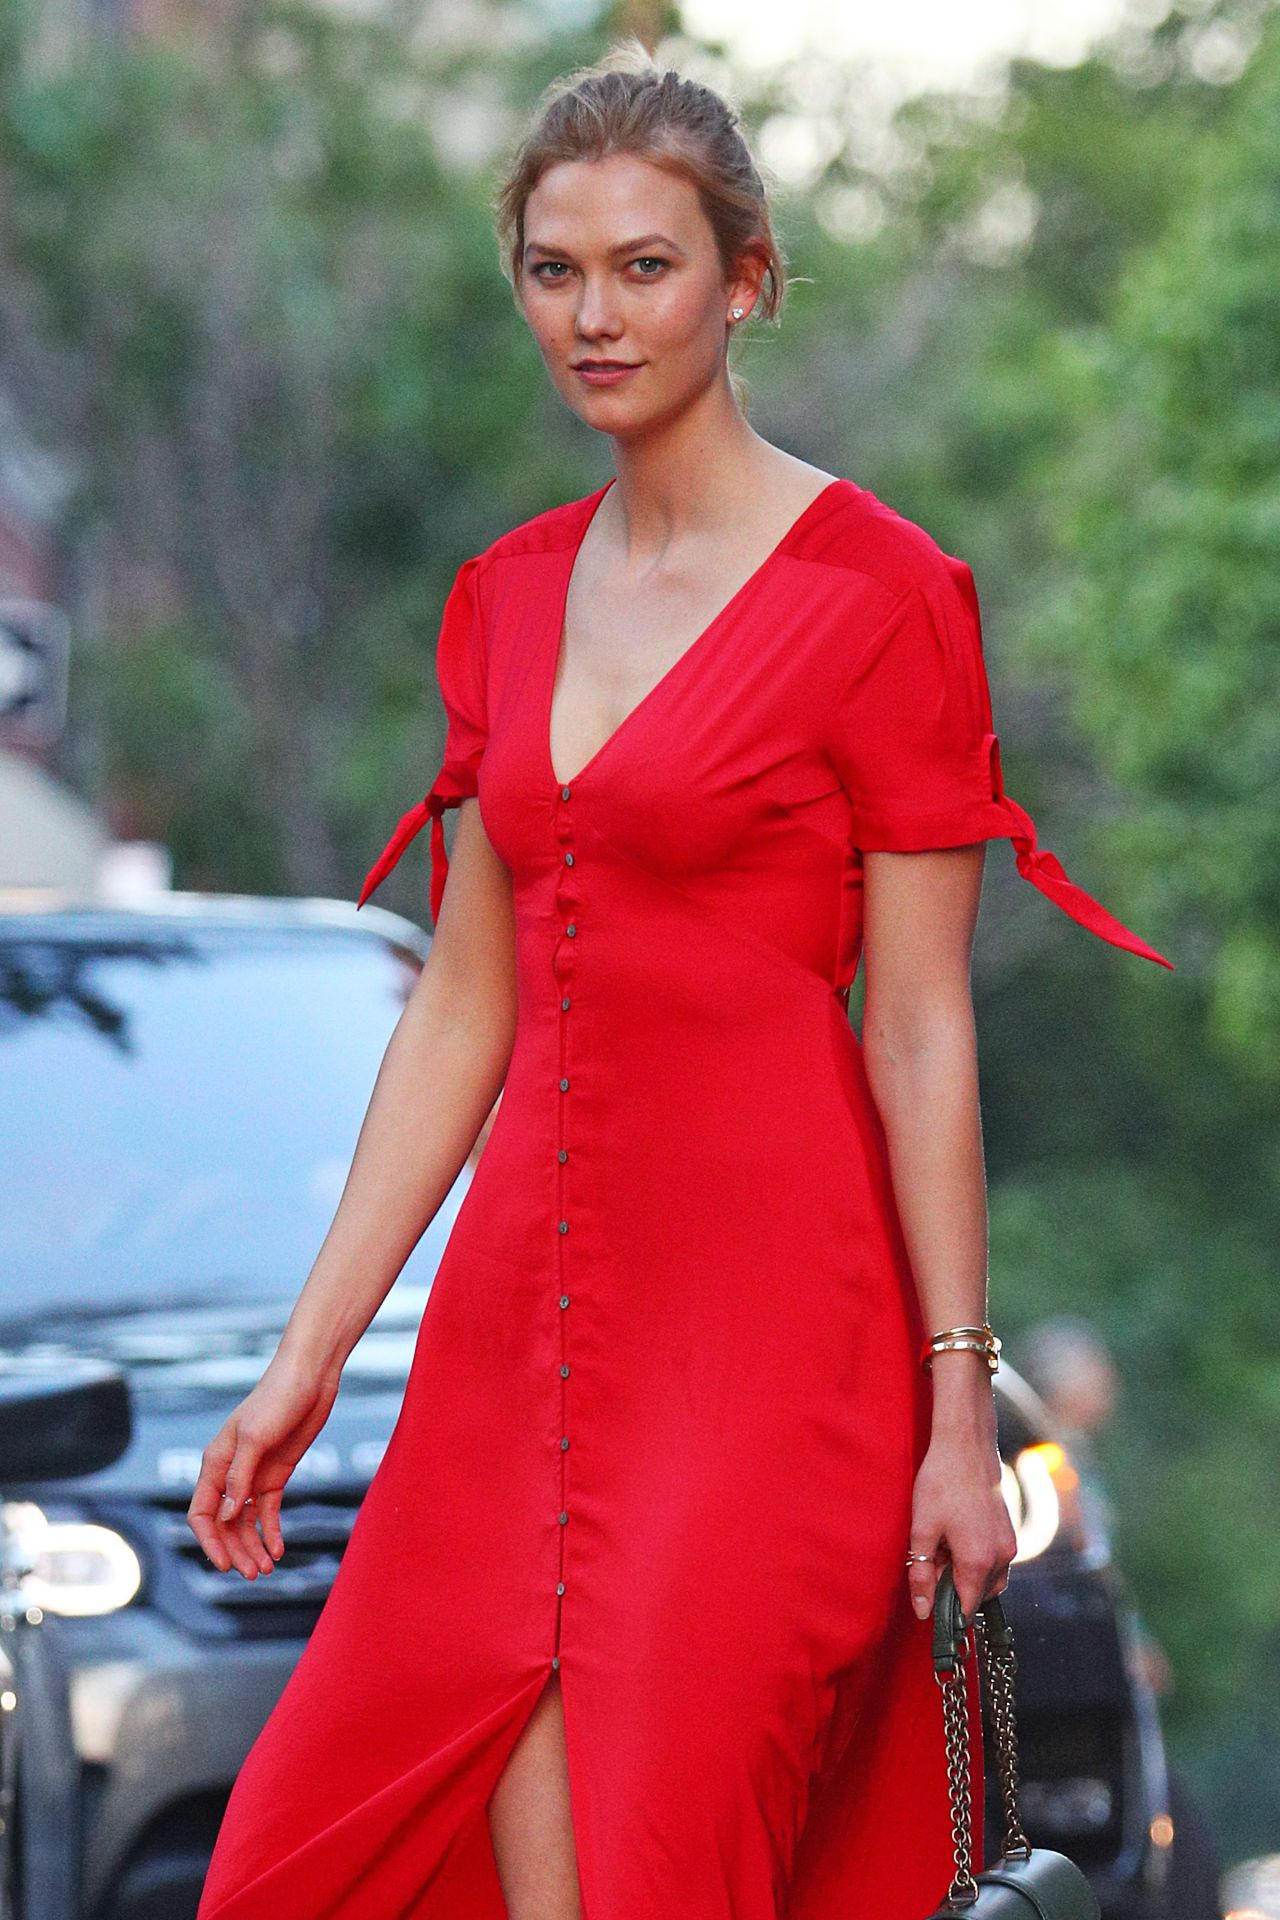 Karlie Kloss In A Bright Red Button Up Dress New York